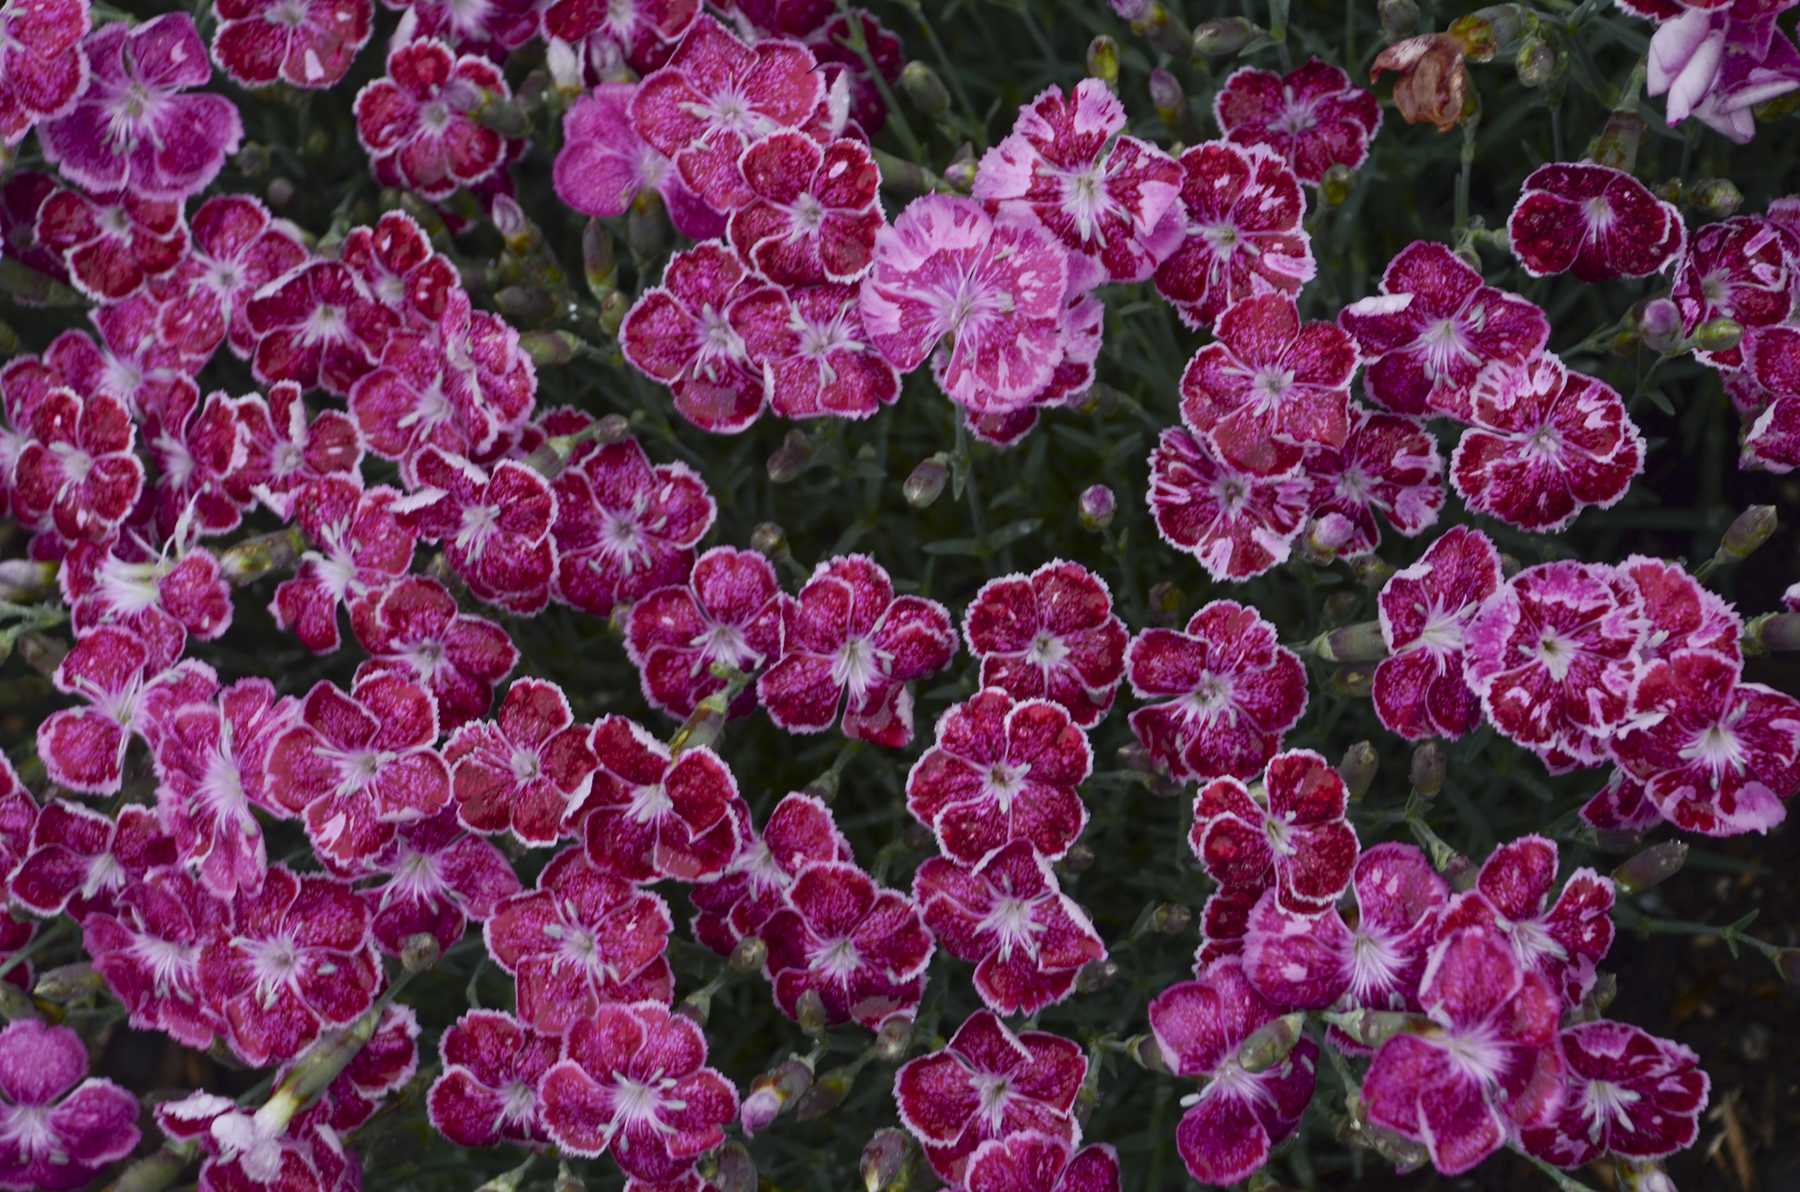 Dianthus_Fire_and_Ice_Bloom_10589.jpg